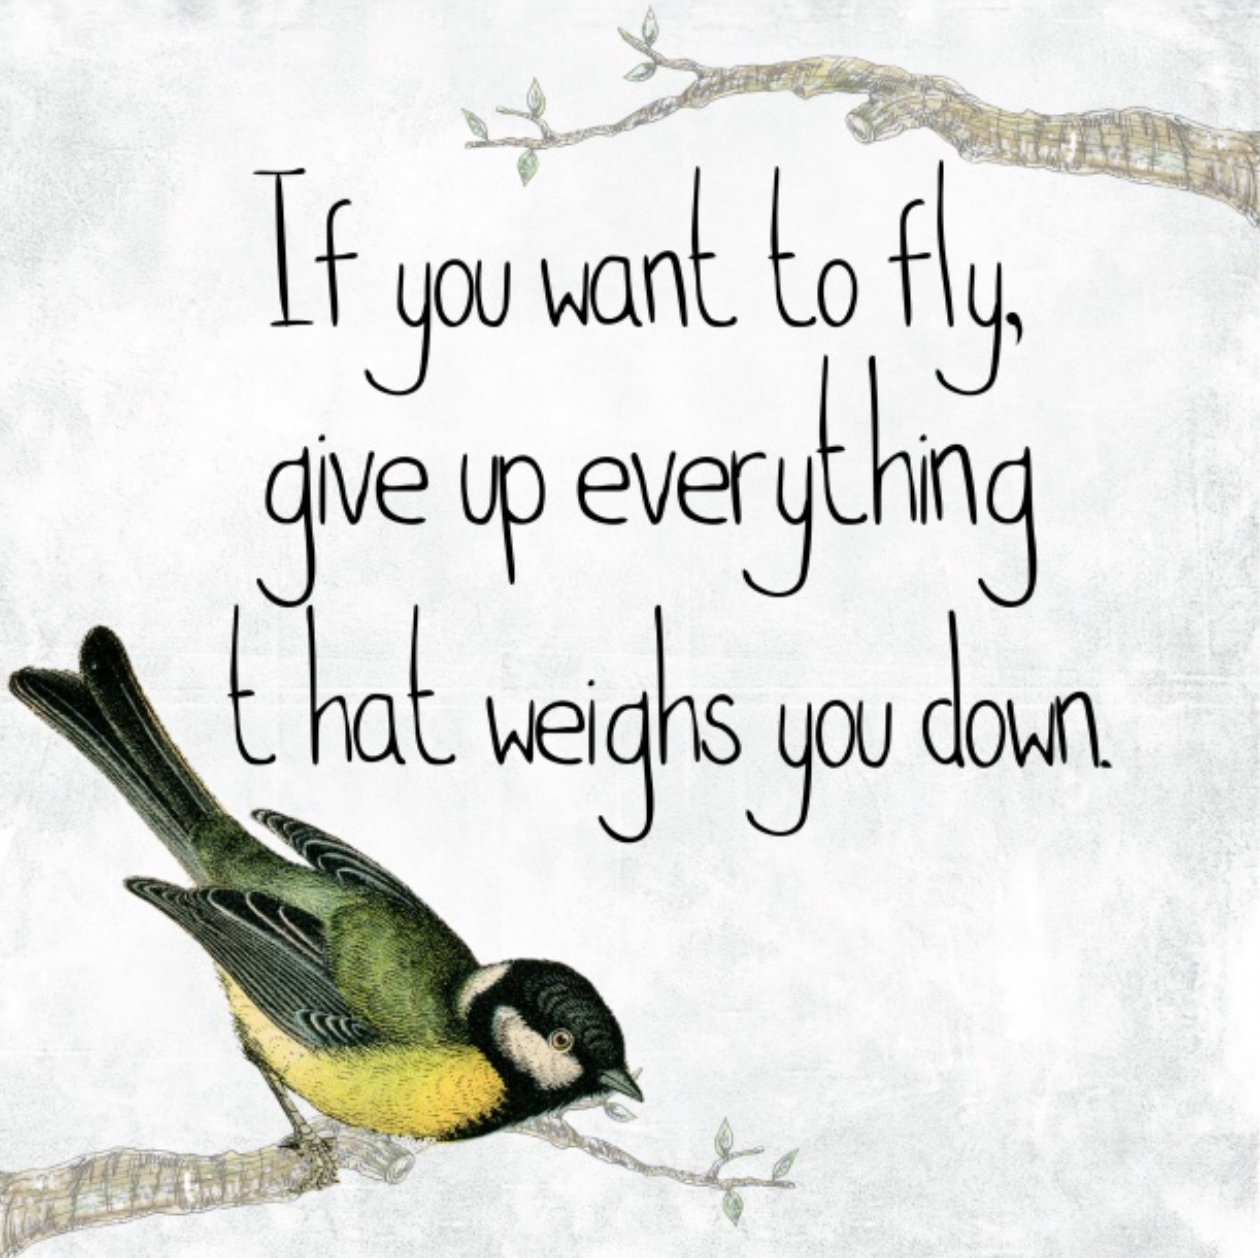 Fly to you goals! Photo via https://www.publicdomainpictures.net/en/view-image.php?image=171453&picture=inspirational-bird-quote-freedom  under the Creative Commons License""